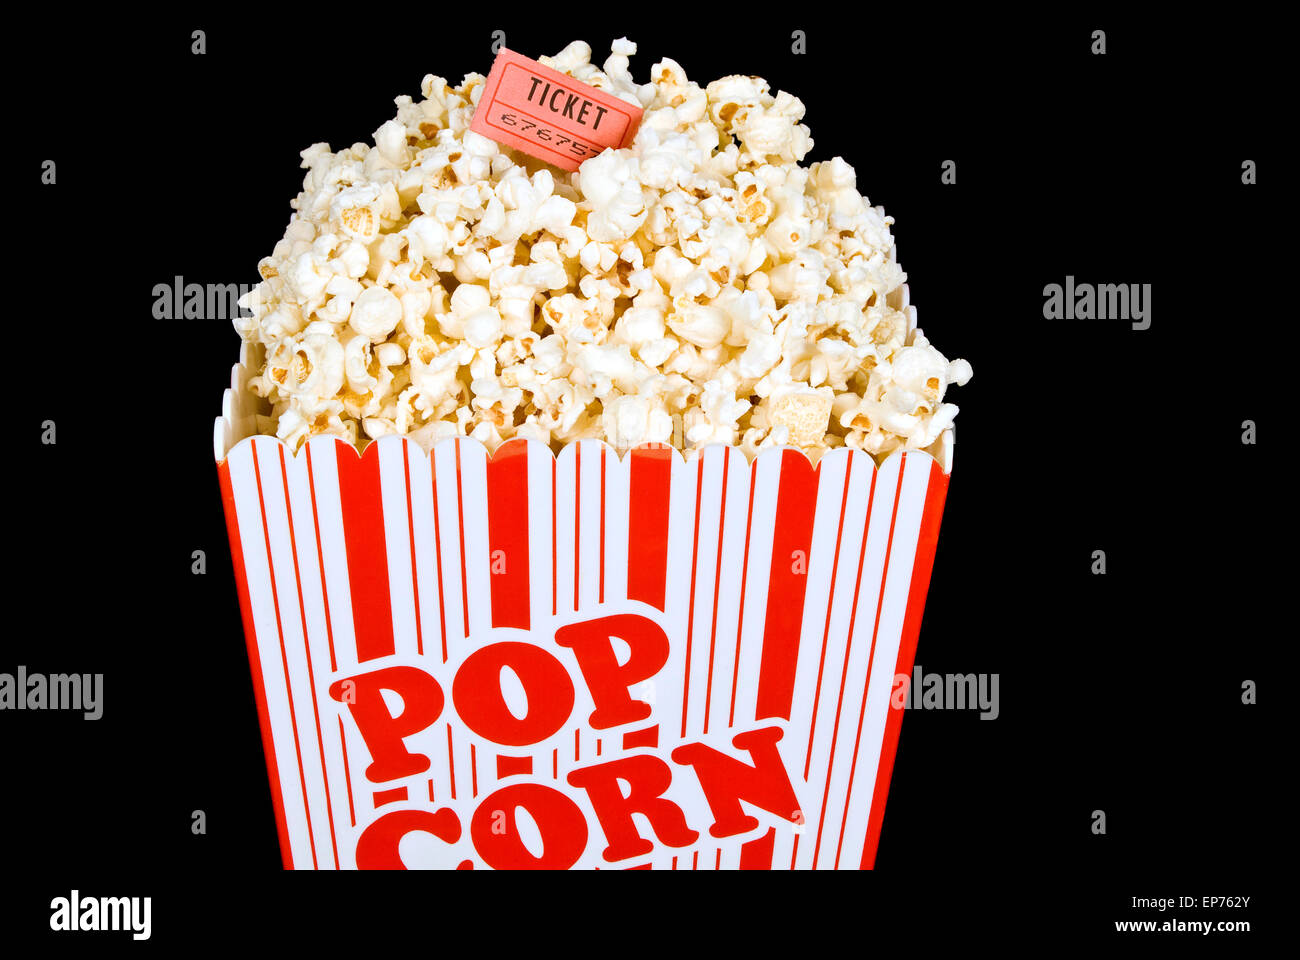 Bucket Of Fresh Popped Popcorn With Red Ticket On Black Background - Stock Image